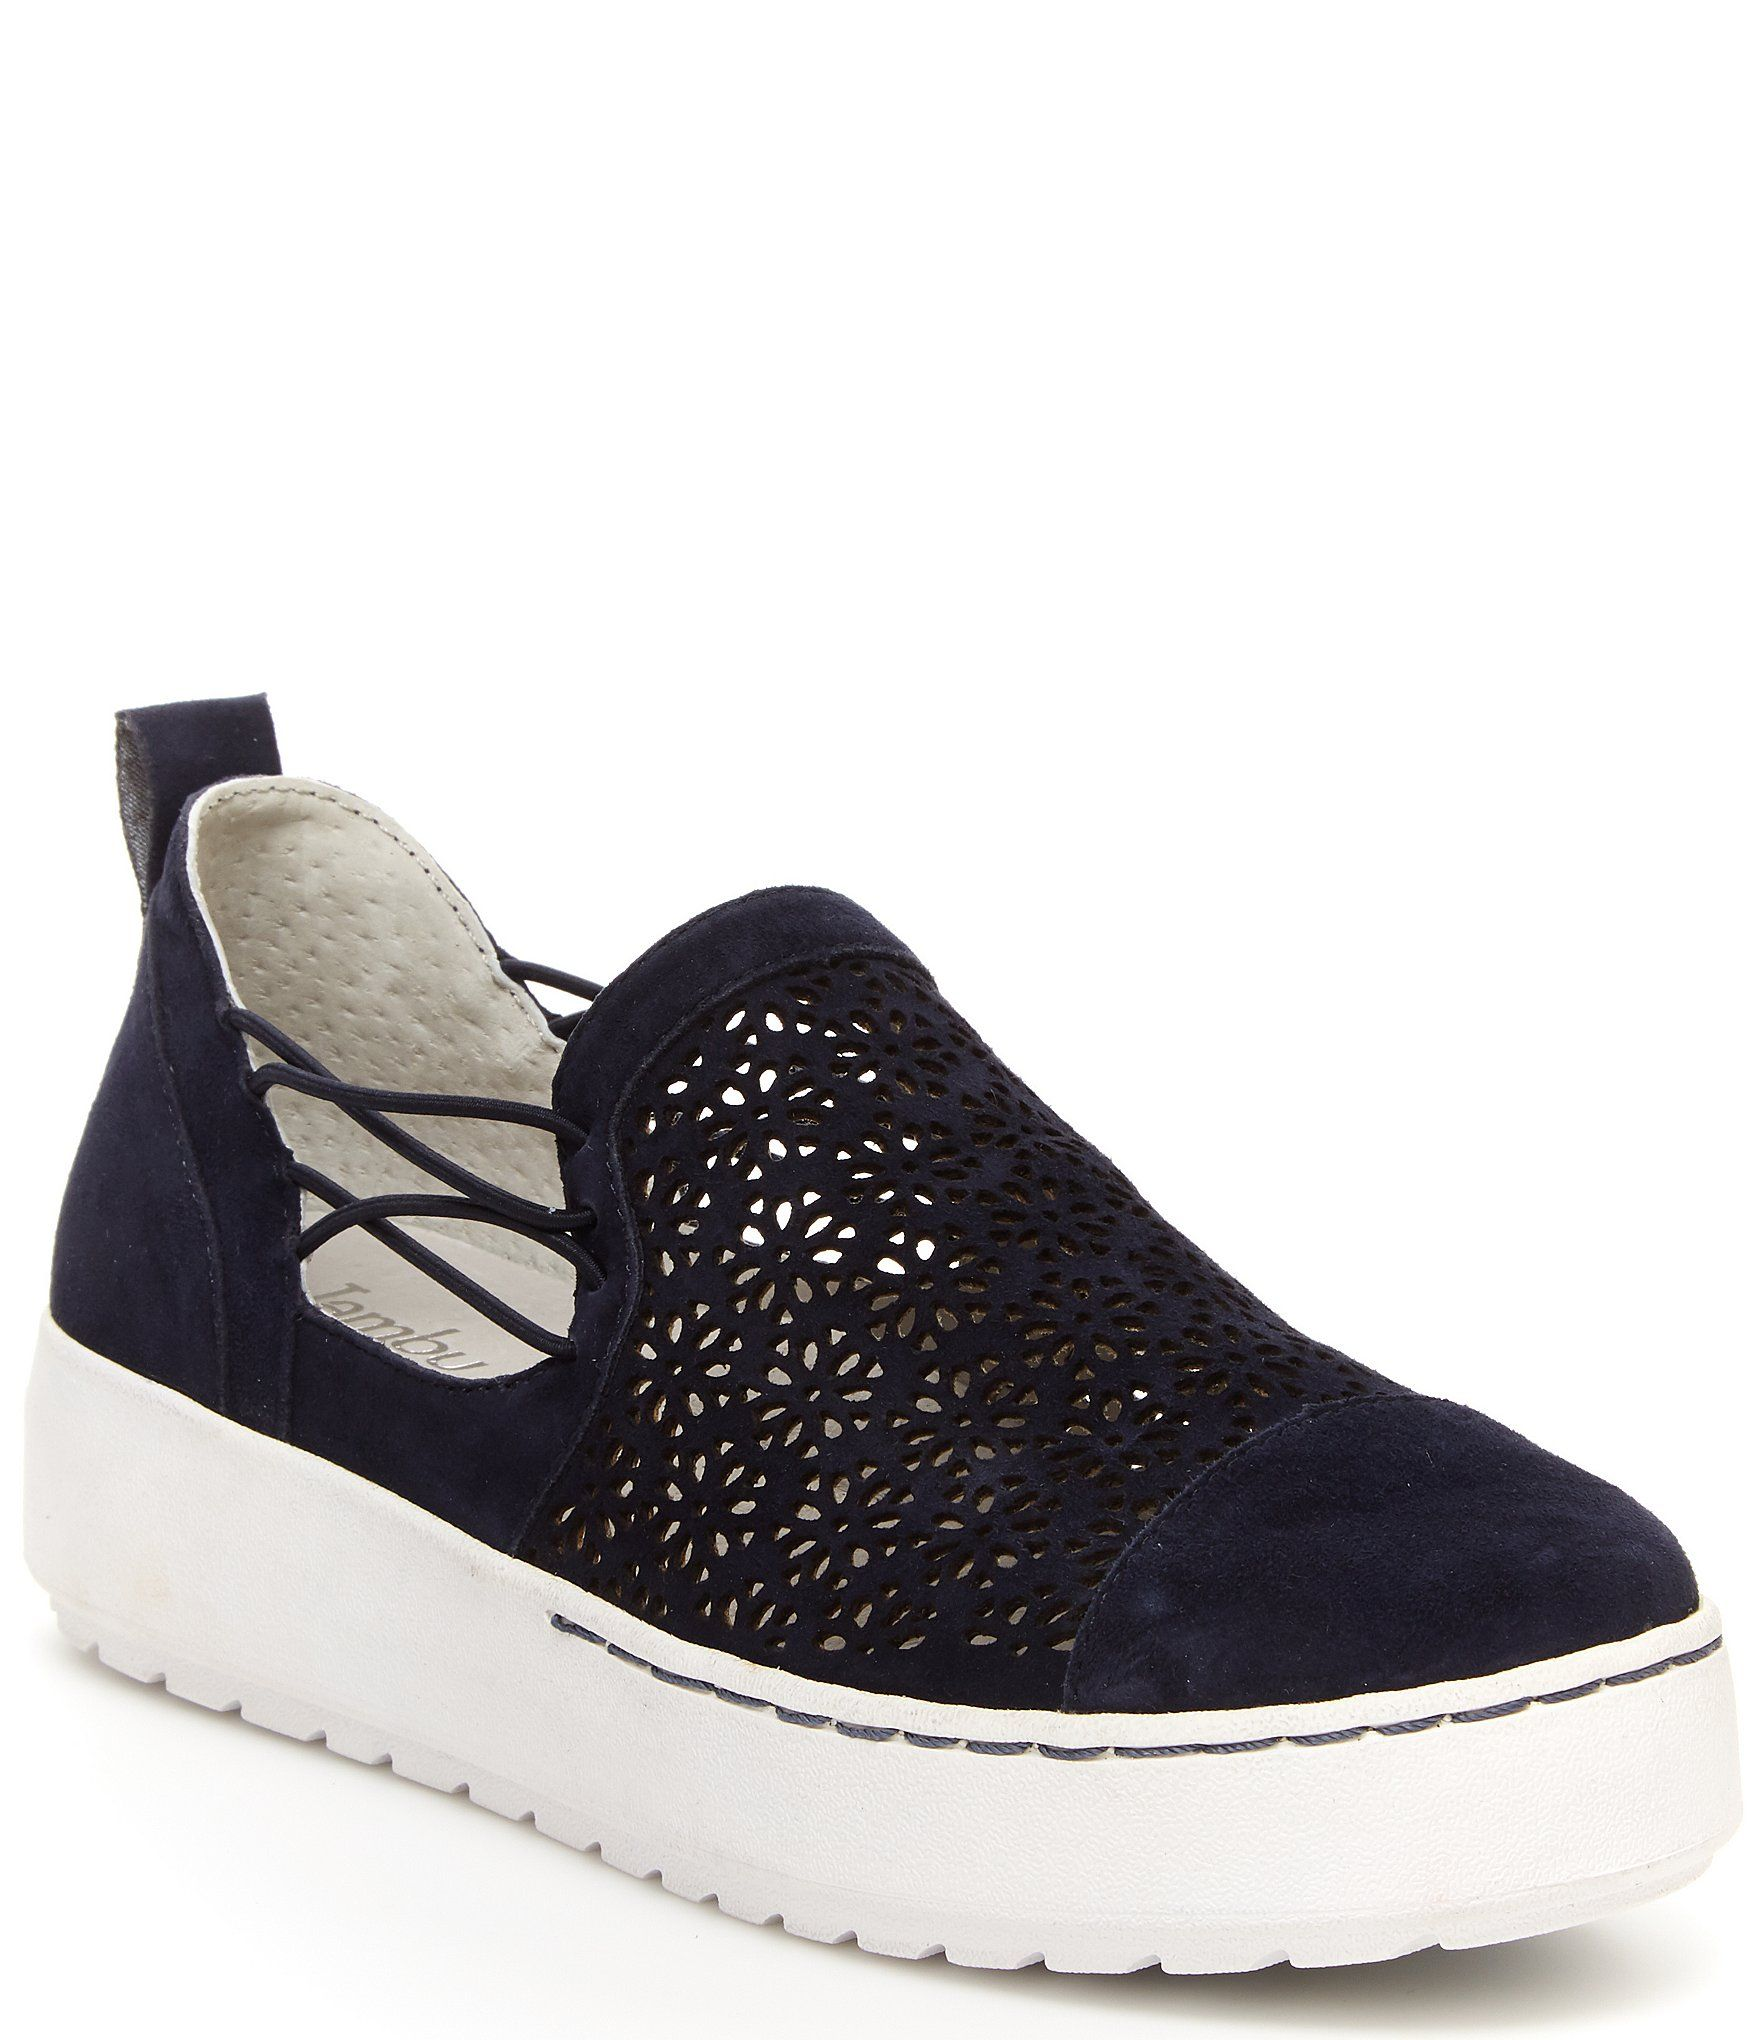 Jambu Erin Perforated Metallic Leather Slip On Sneakers | Dillard's #metallicleather